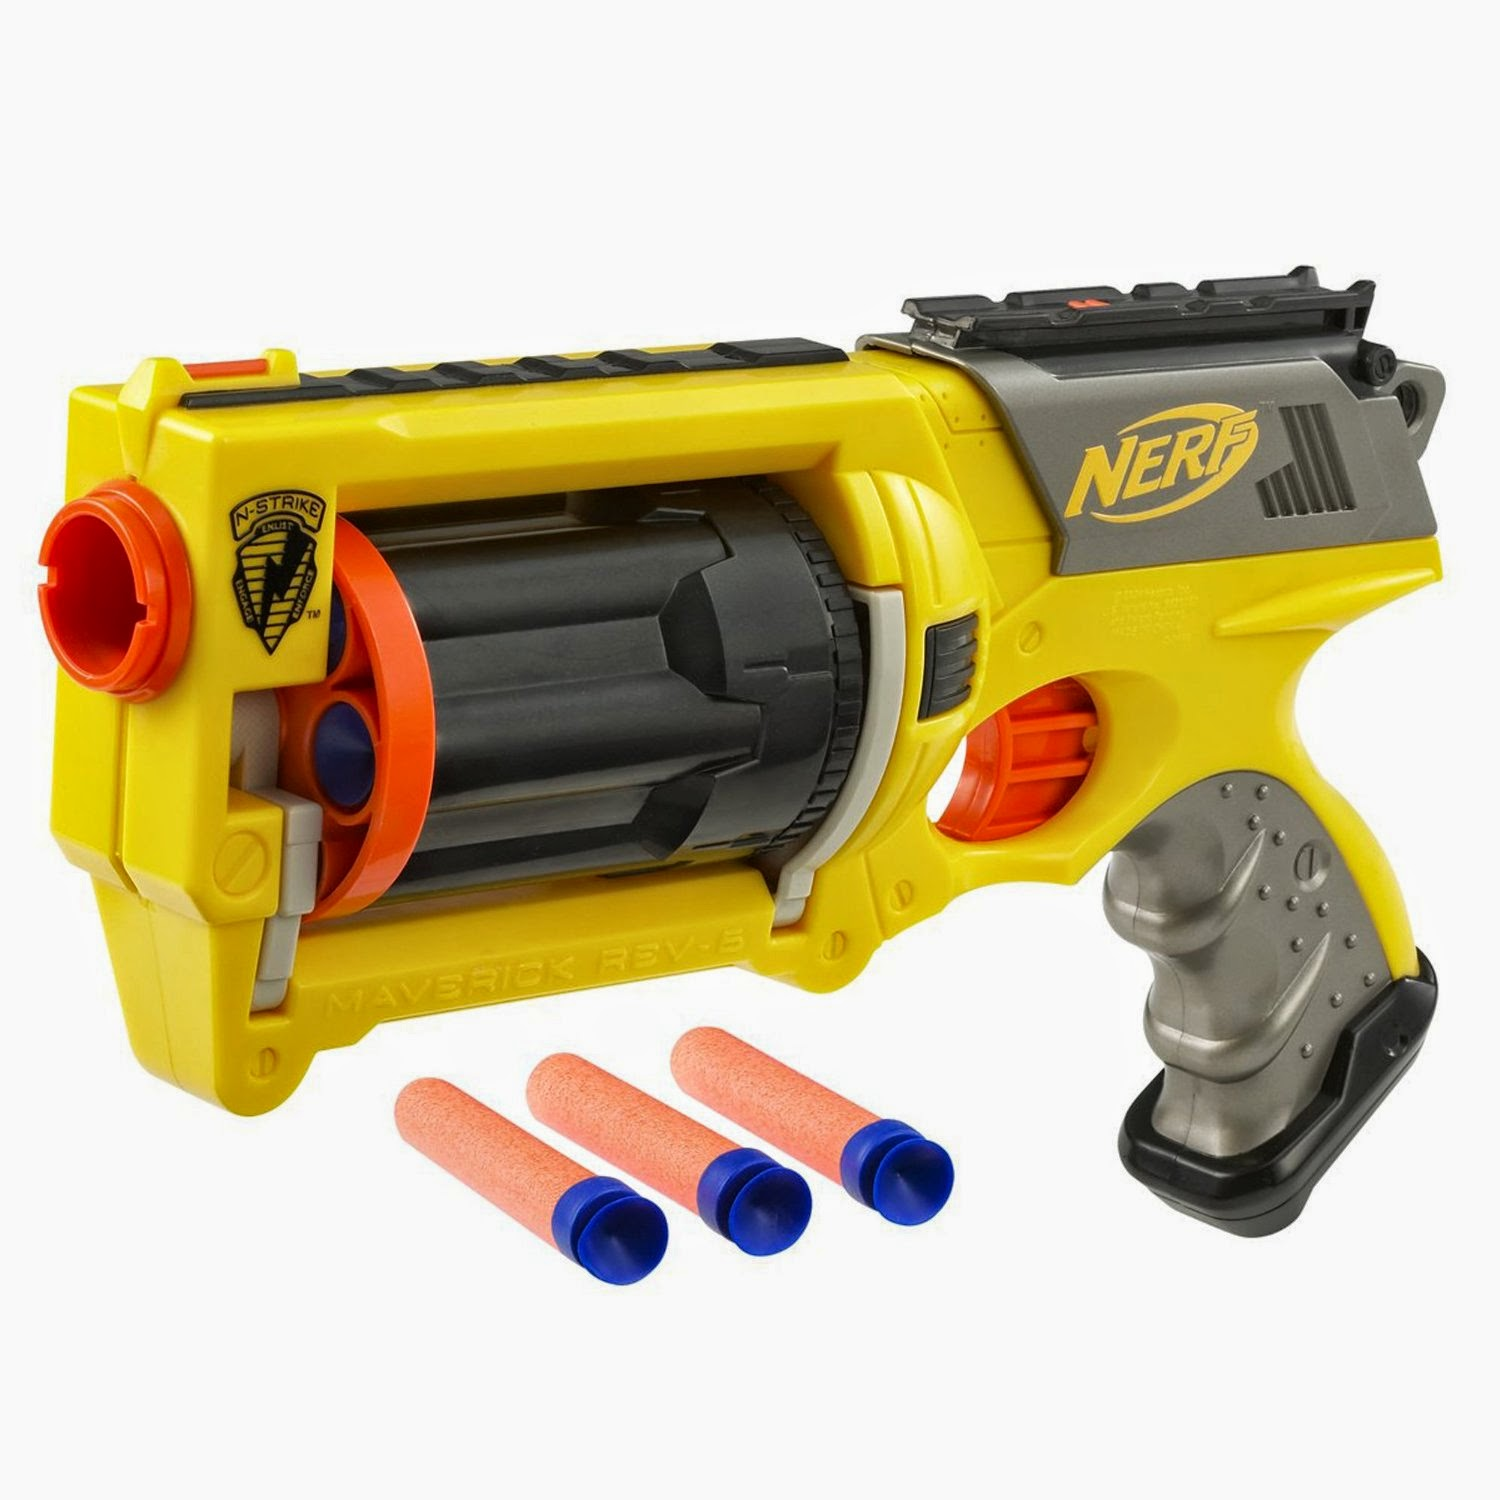 The Nerf N Strike is the gun of choice Easy to use and with a large variety of darts available